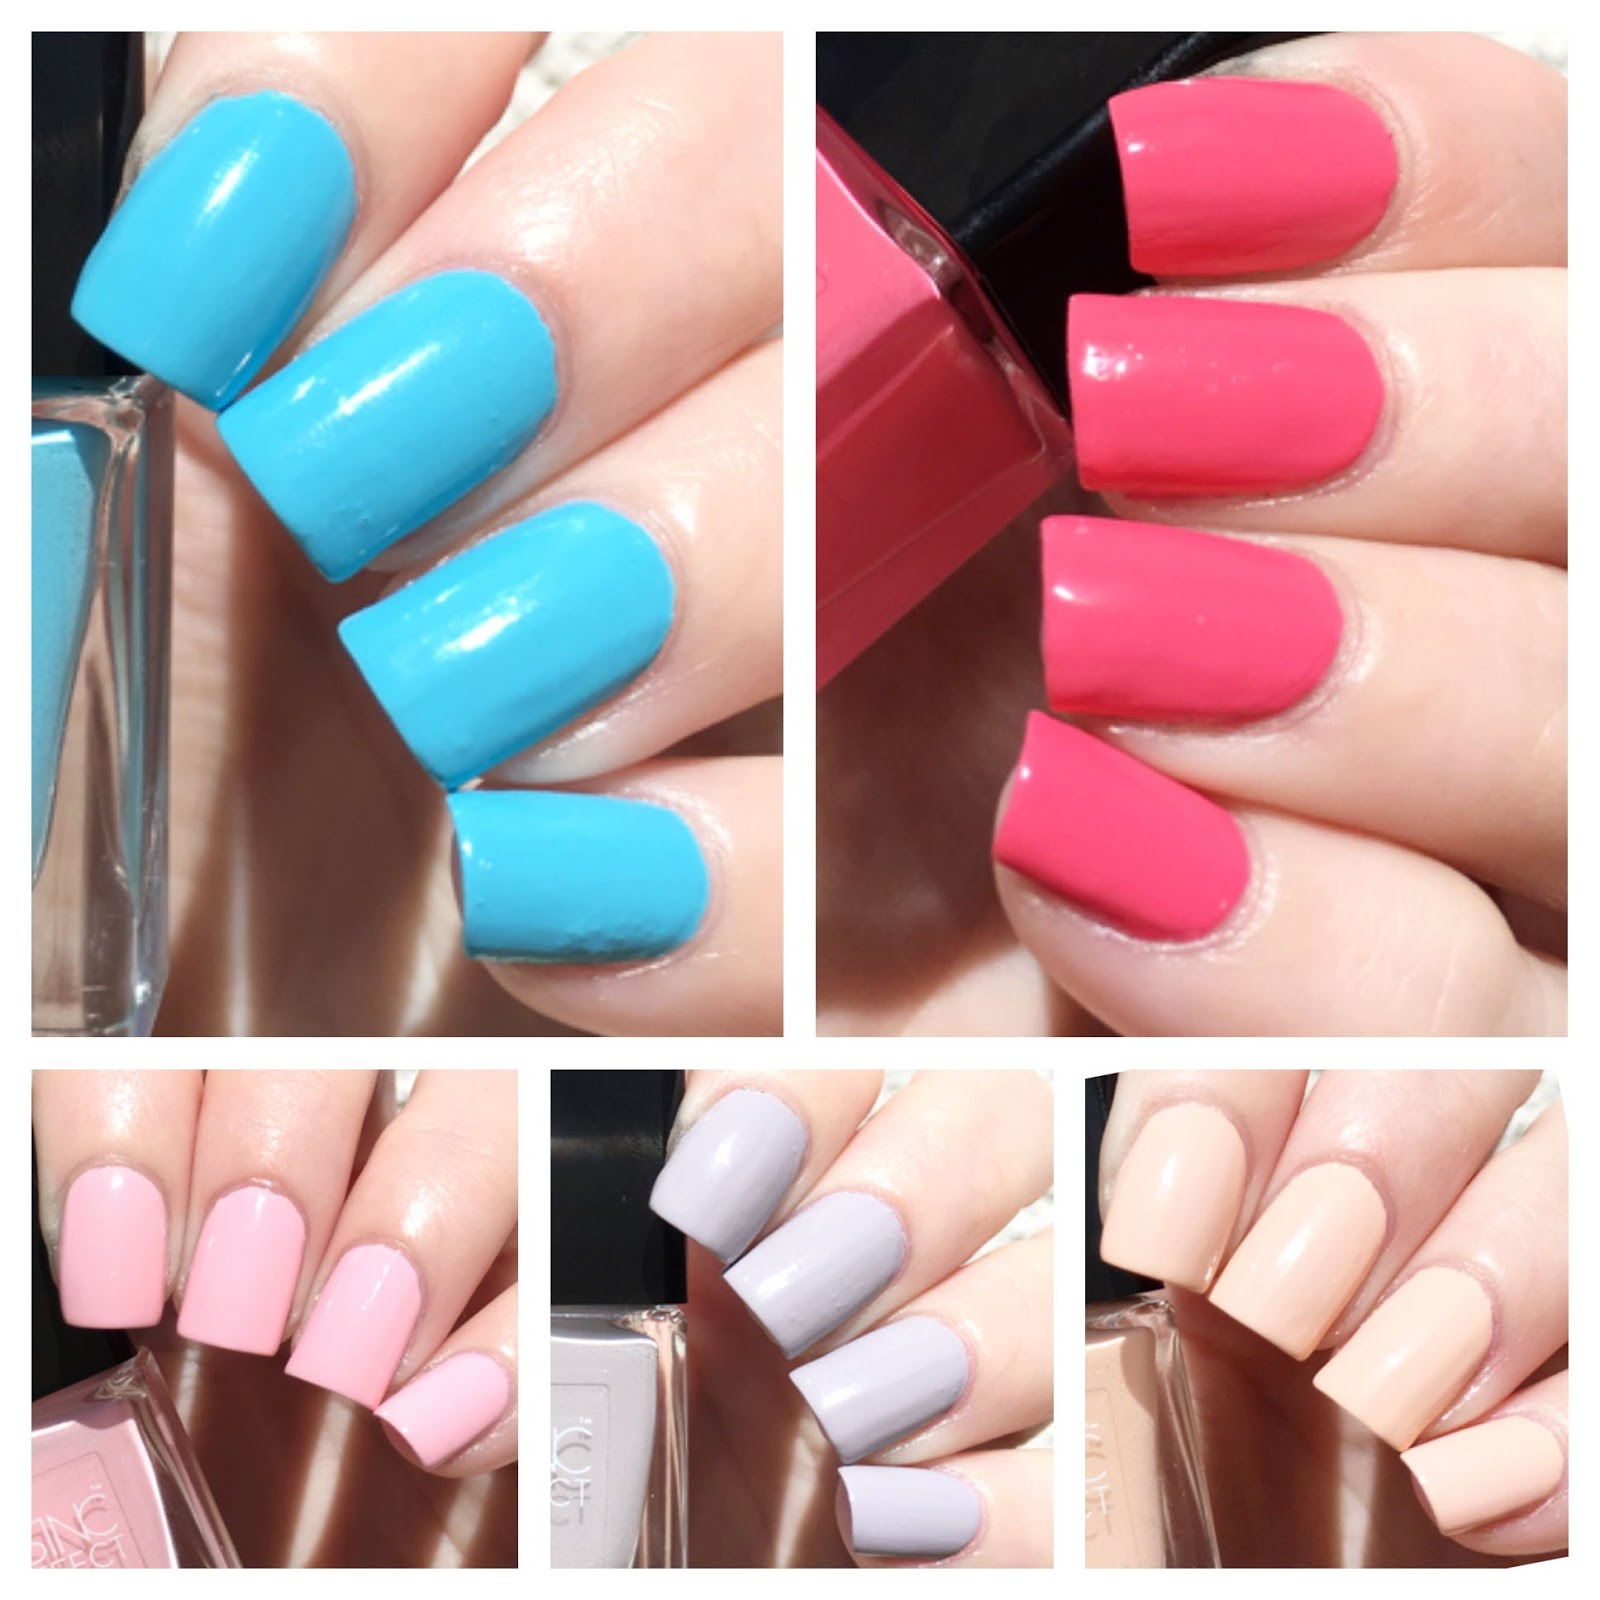 Nails Inc Coconut Brights Spring Summer Mini Gel Effect Collection Swatches Review